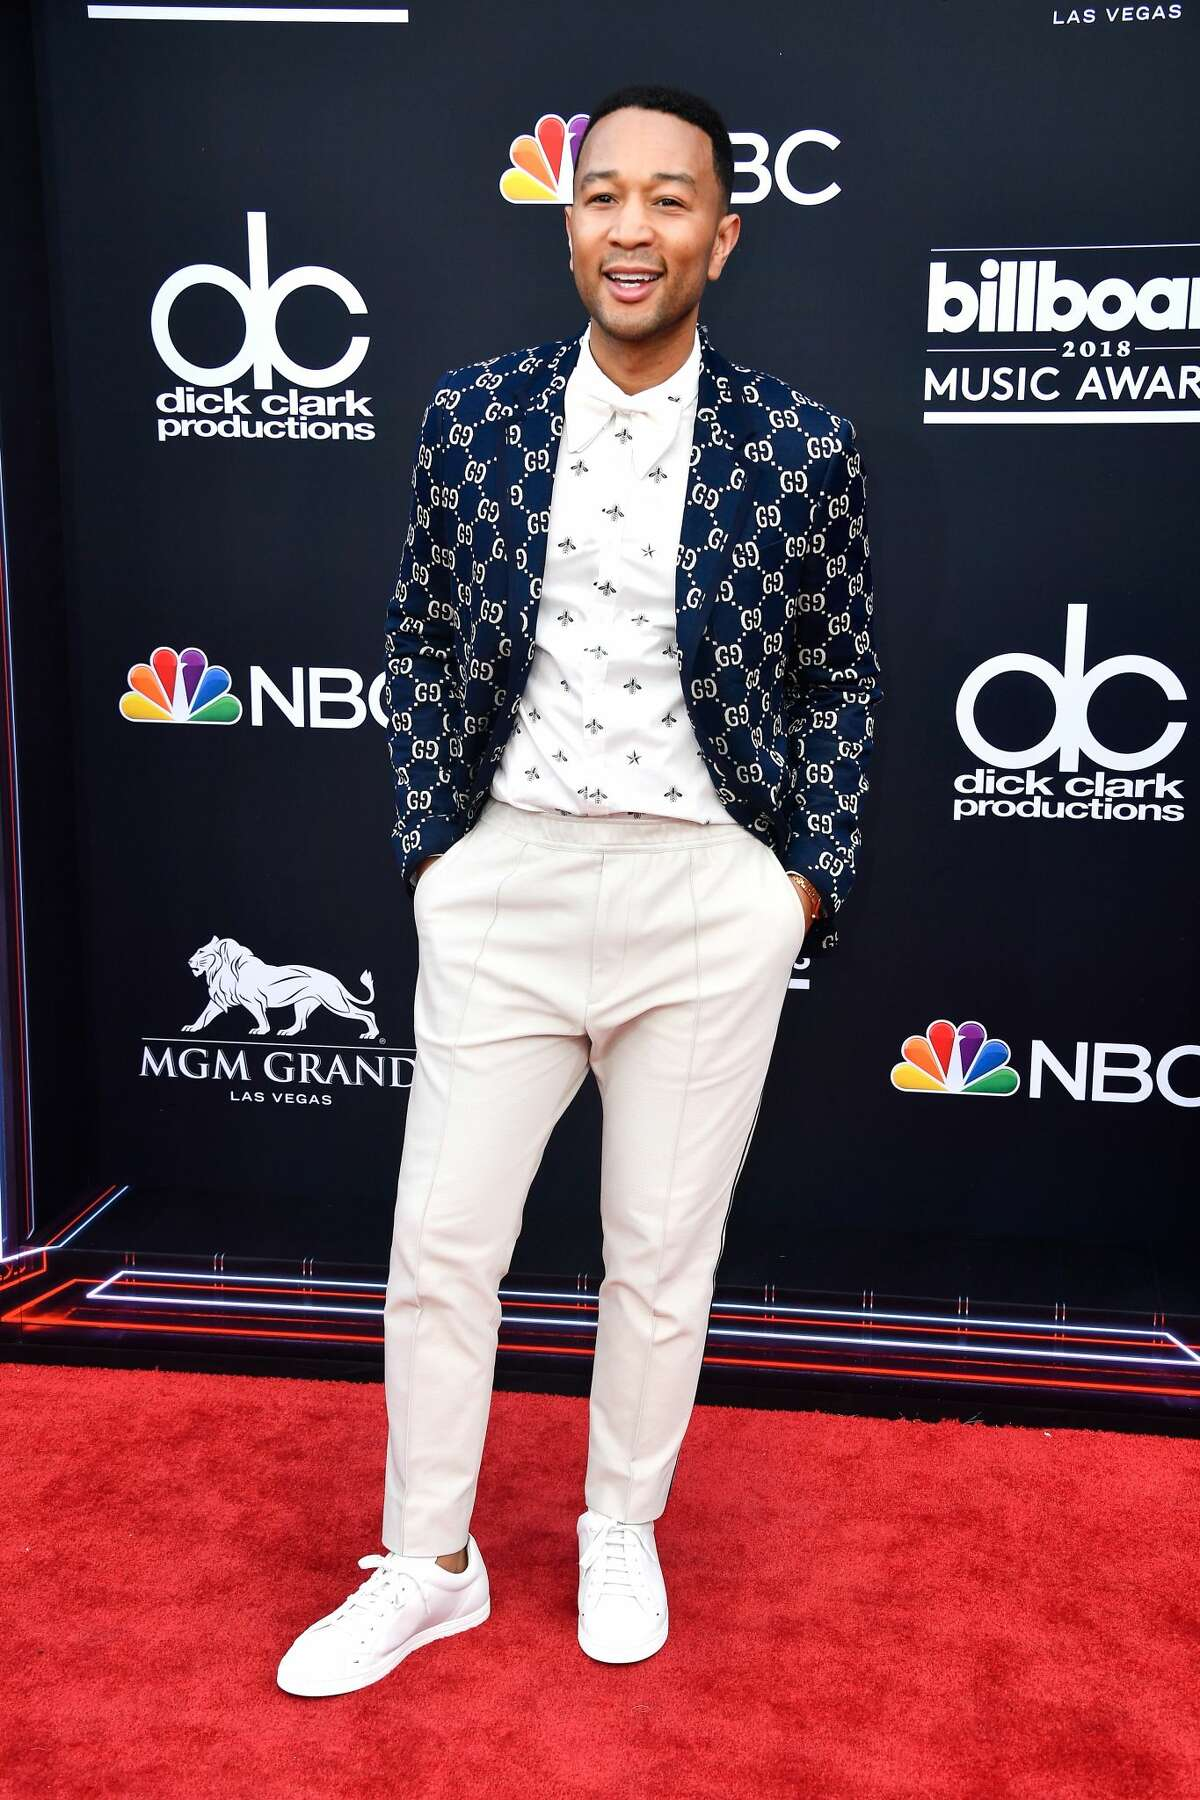 LAS VEGAS, NV - MAY 20: John Legend attends the 2018 Billboard Music Awards at MGM Grand Garden Arena on May 20, 2018 in Las Vegas, Nevada. (Photo by Frazer Harrison/Getty Images)